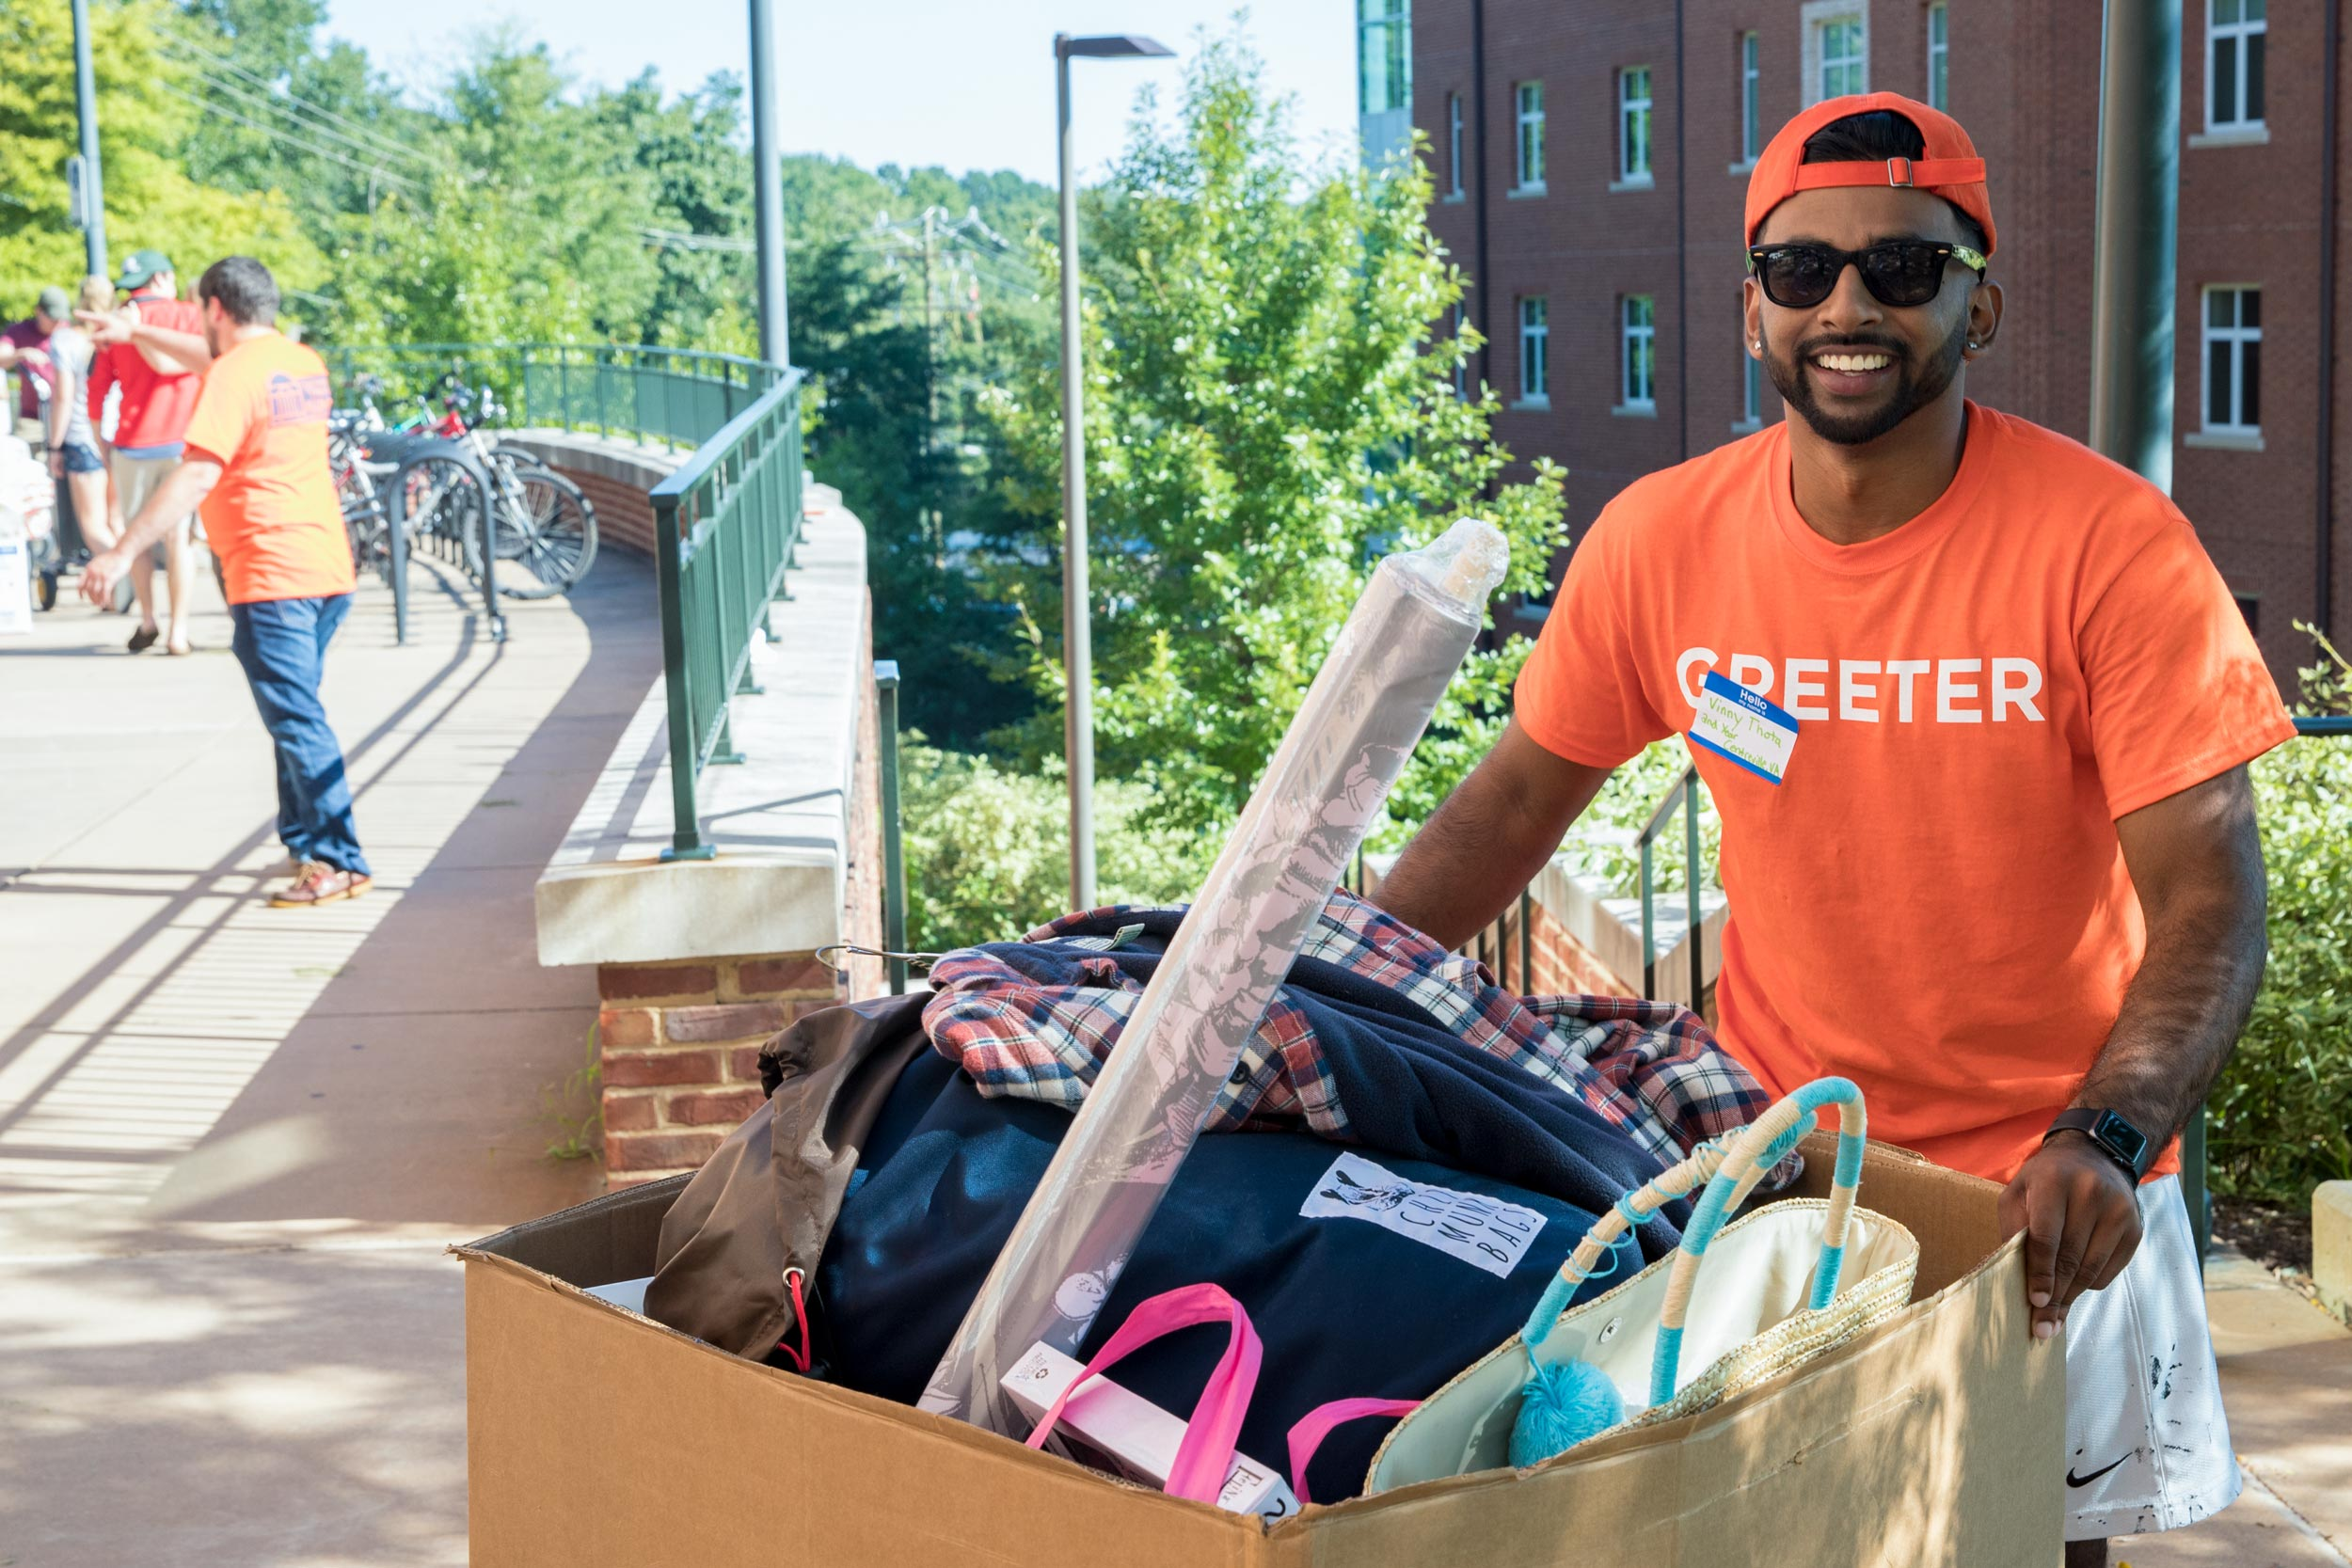 Third-year student Vinny Thota said he volunteered to be a Greeter at Kellogg last summer because a Greeter helped him move there his first year.